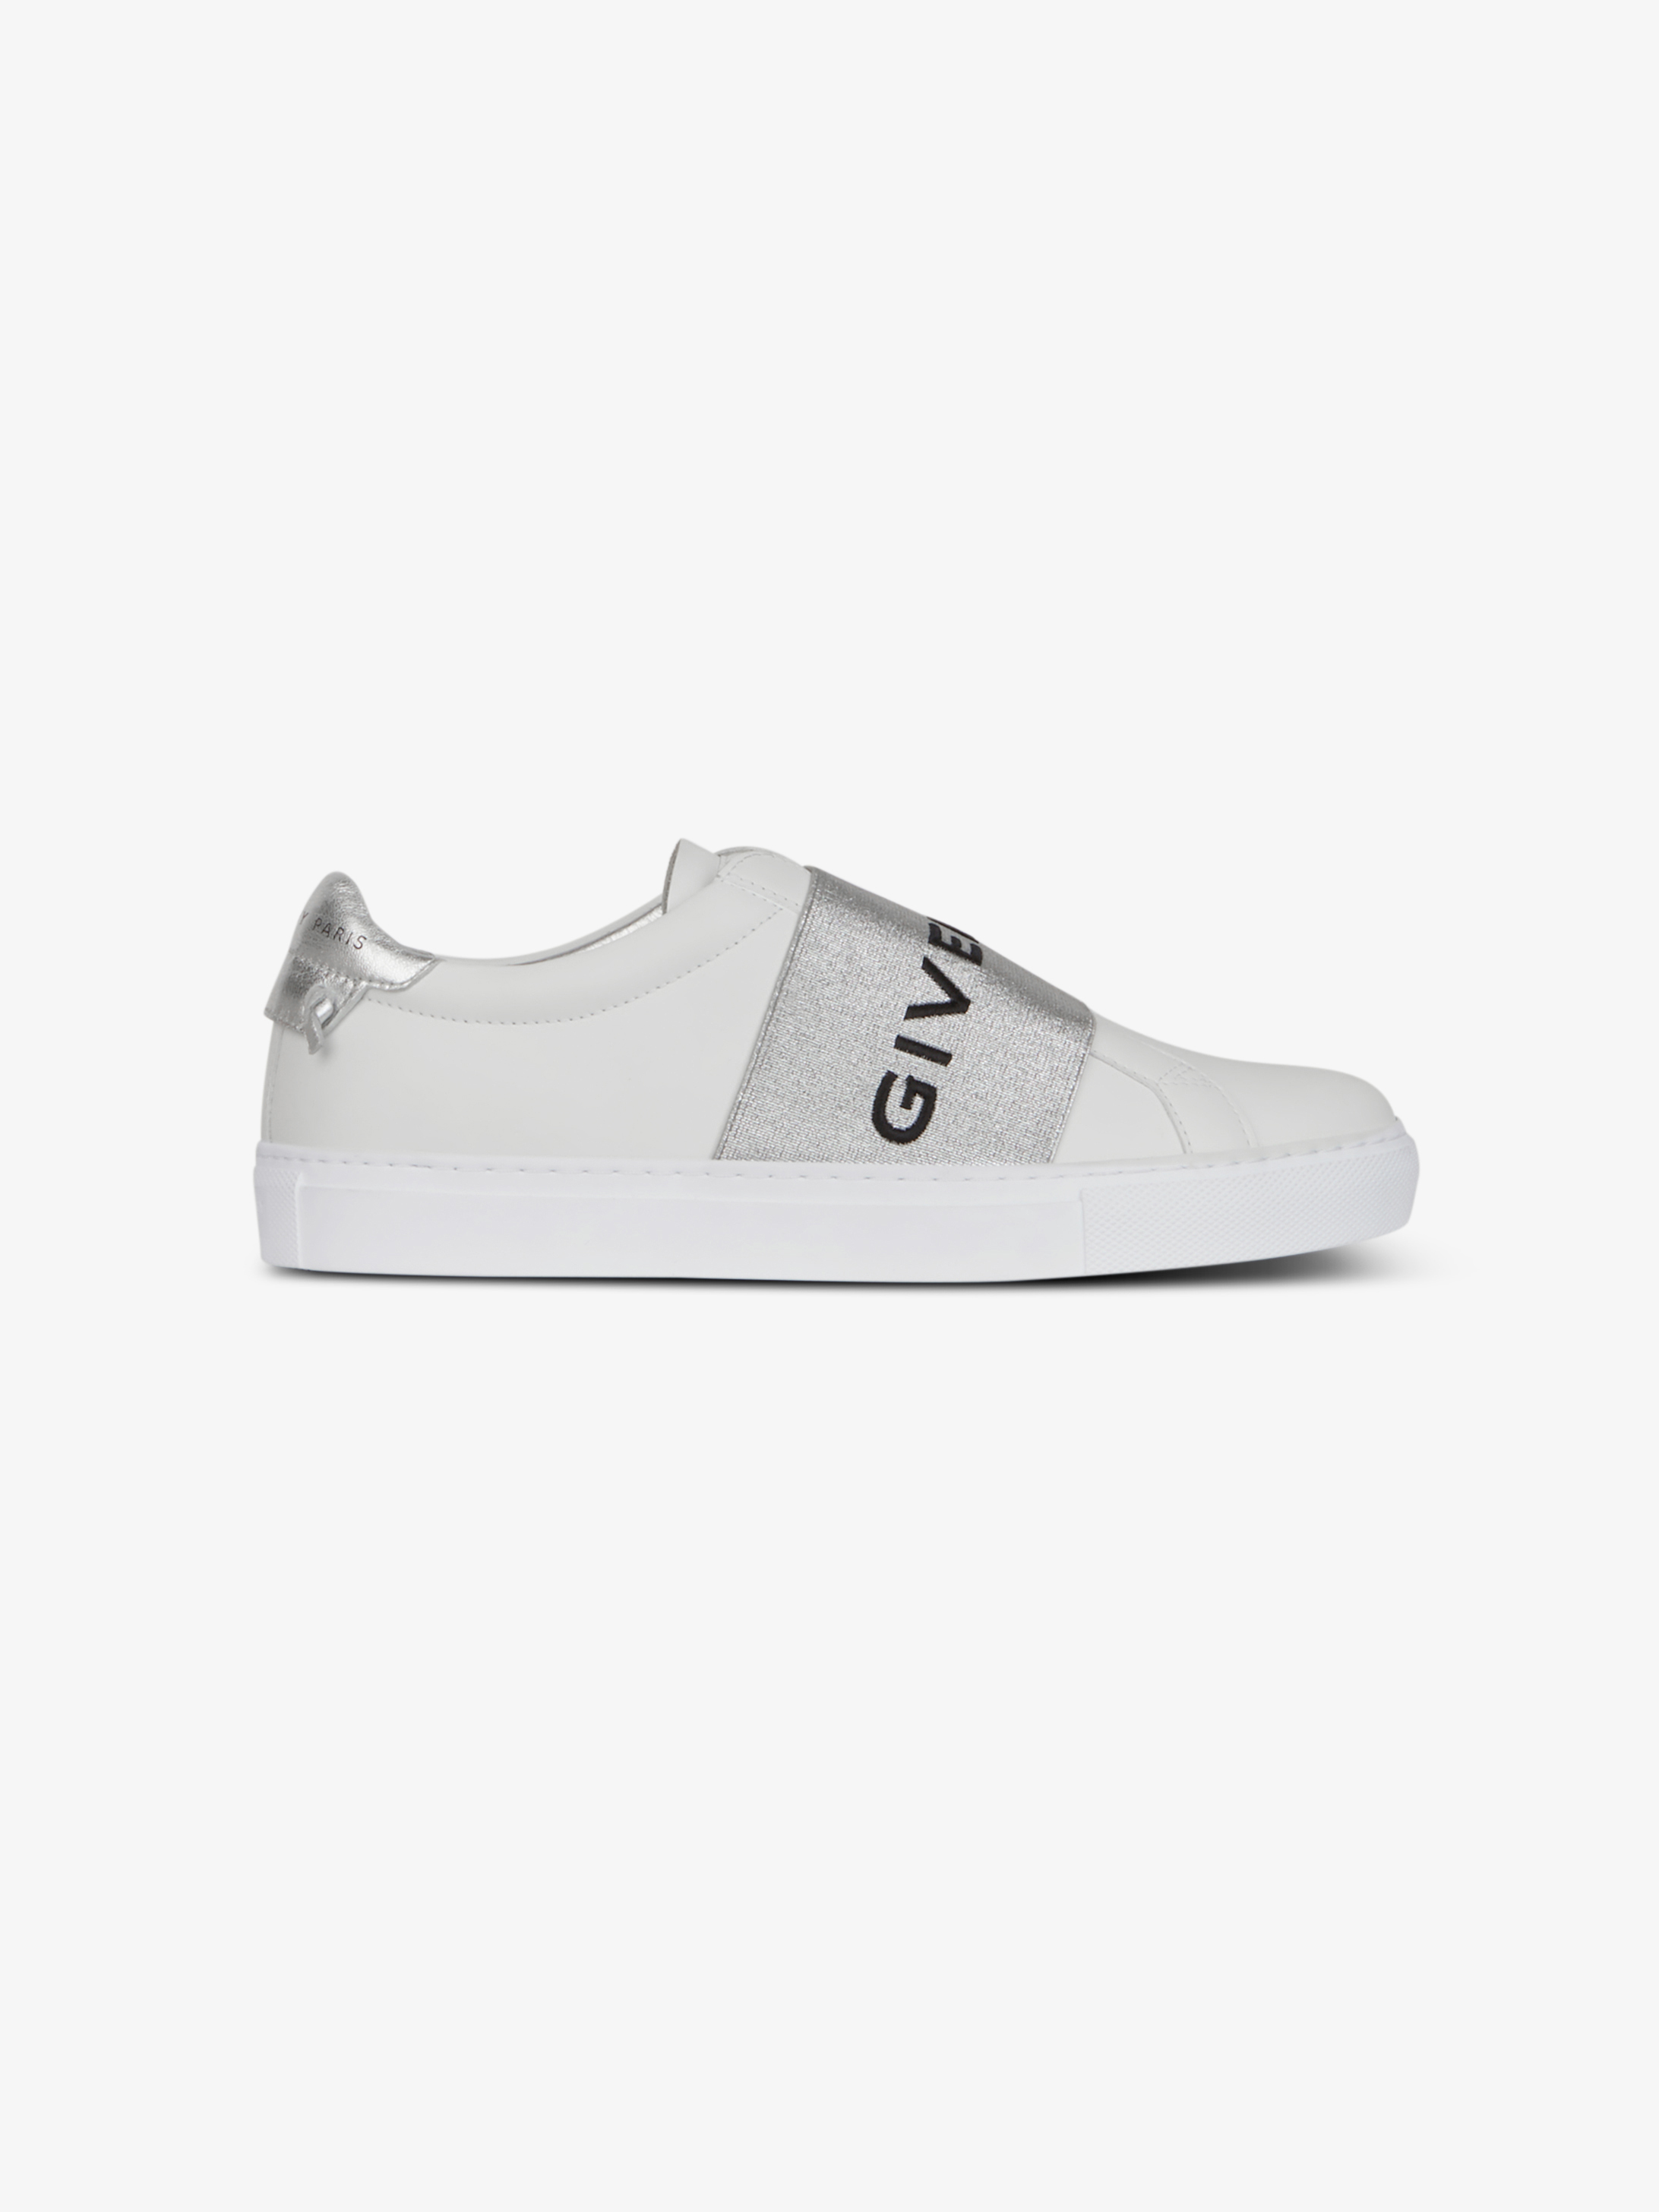 GIVENCHY PARIS metallized strap sneakers in leather